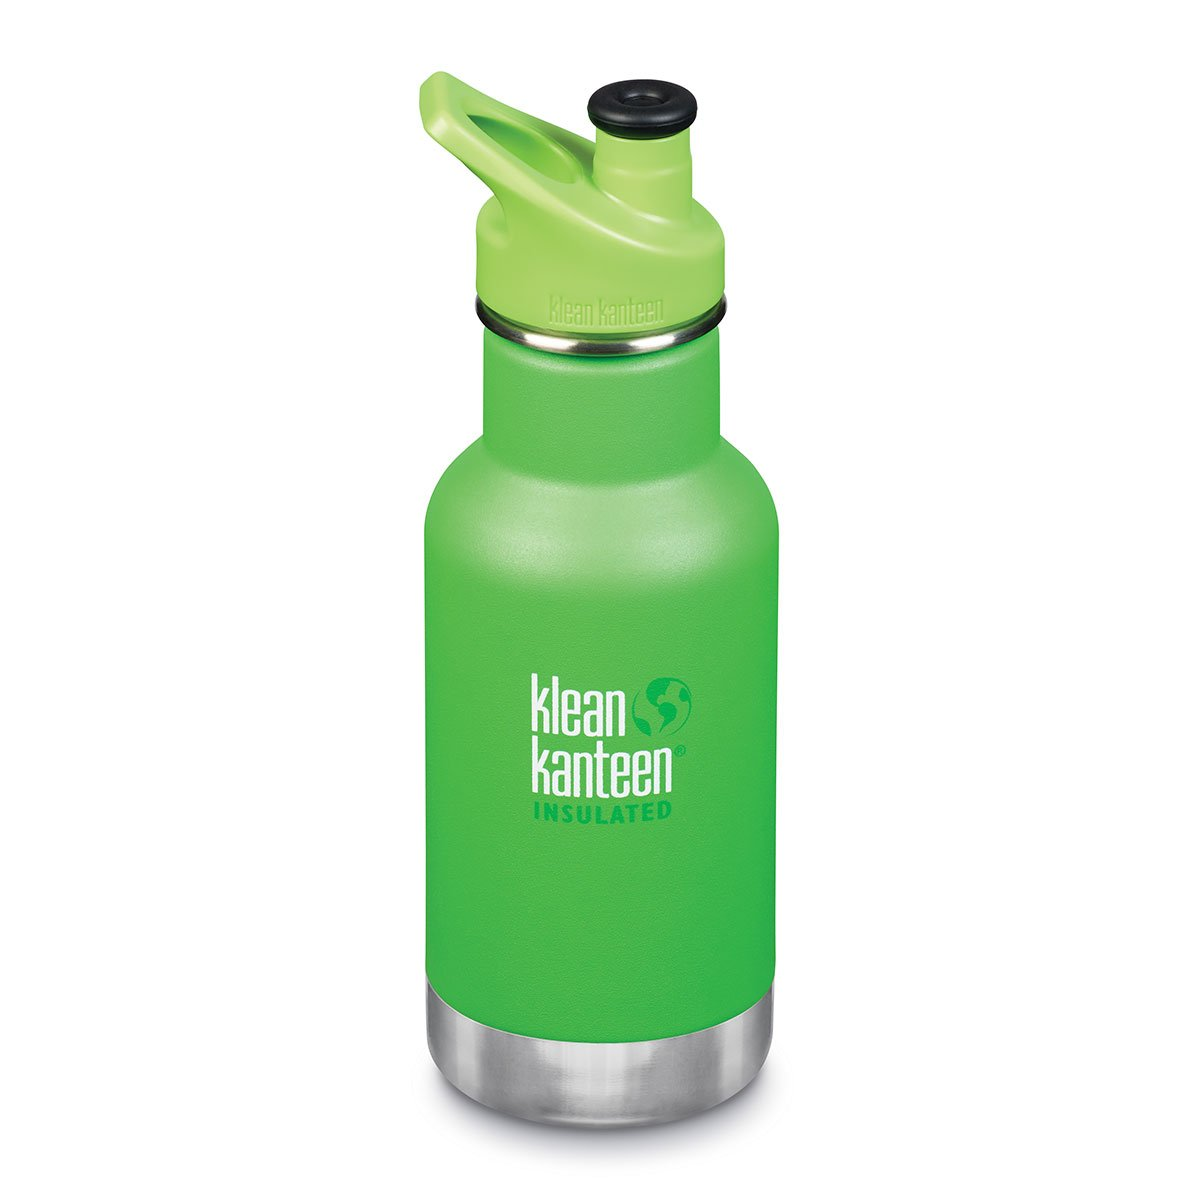 Klean Kanteen Kids Insulated Drink Bottle 12oz Klean Kanteen Water Bottles Lizard Tails at Little Earth Nest Eco Shop